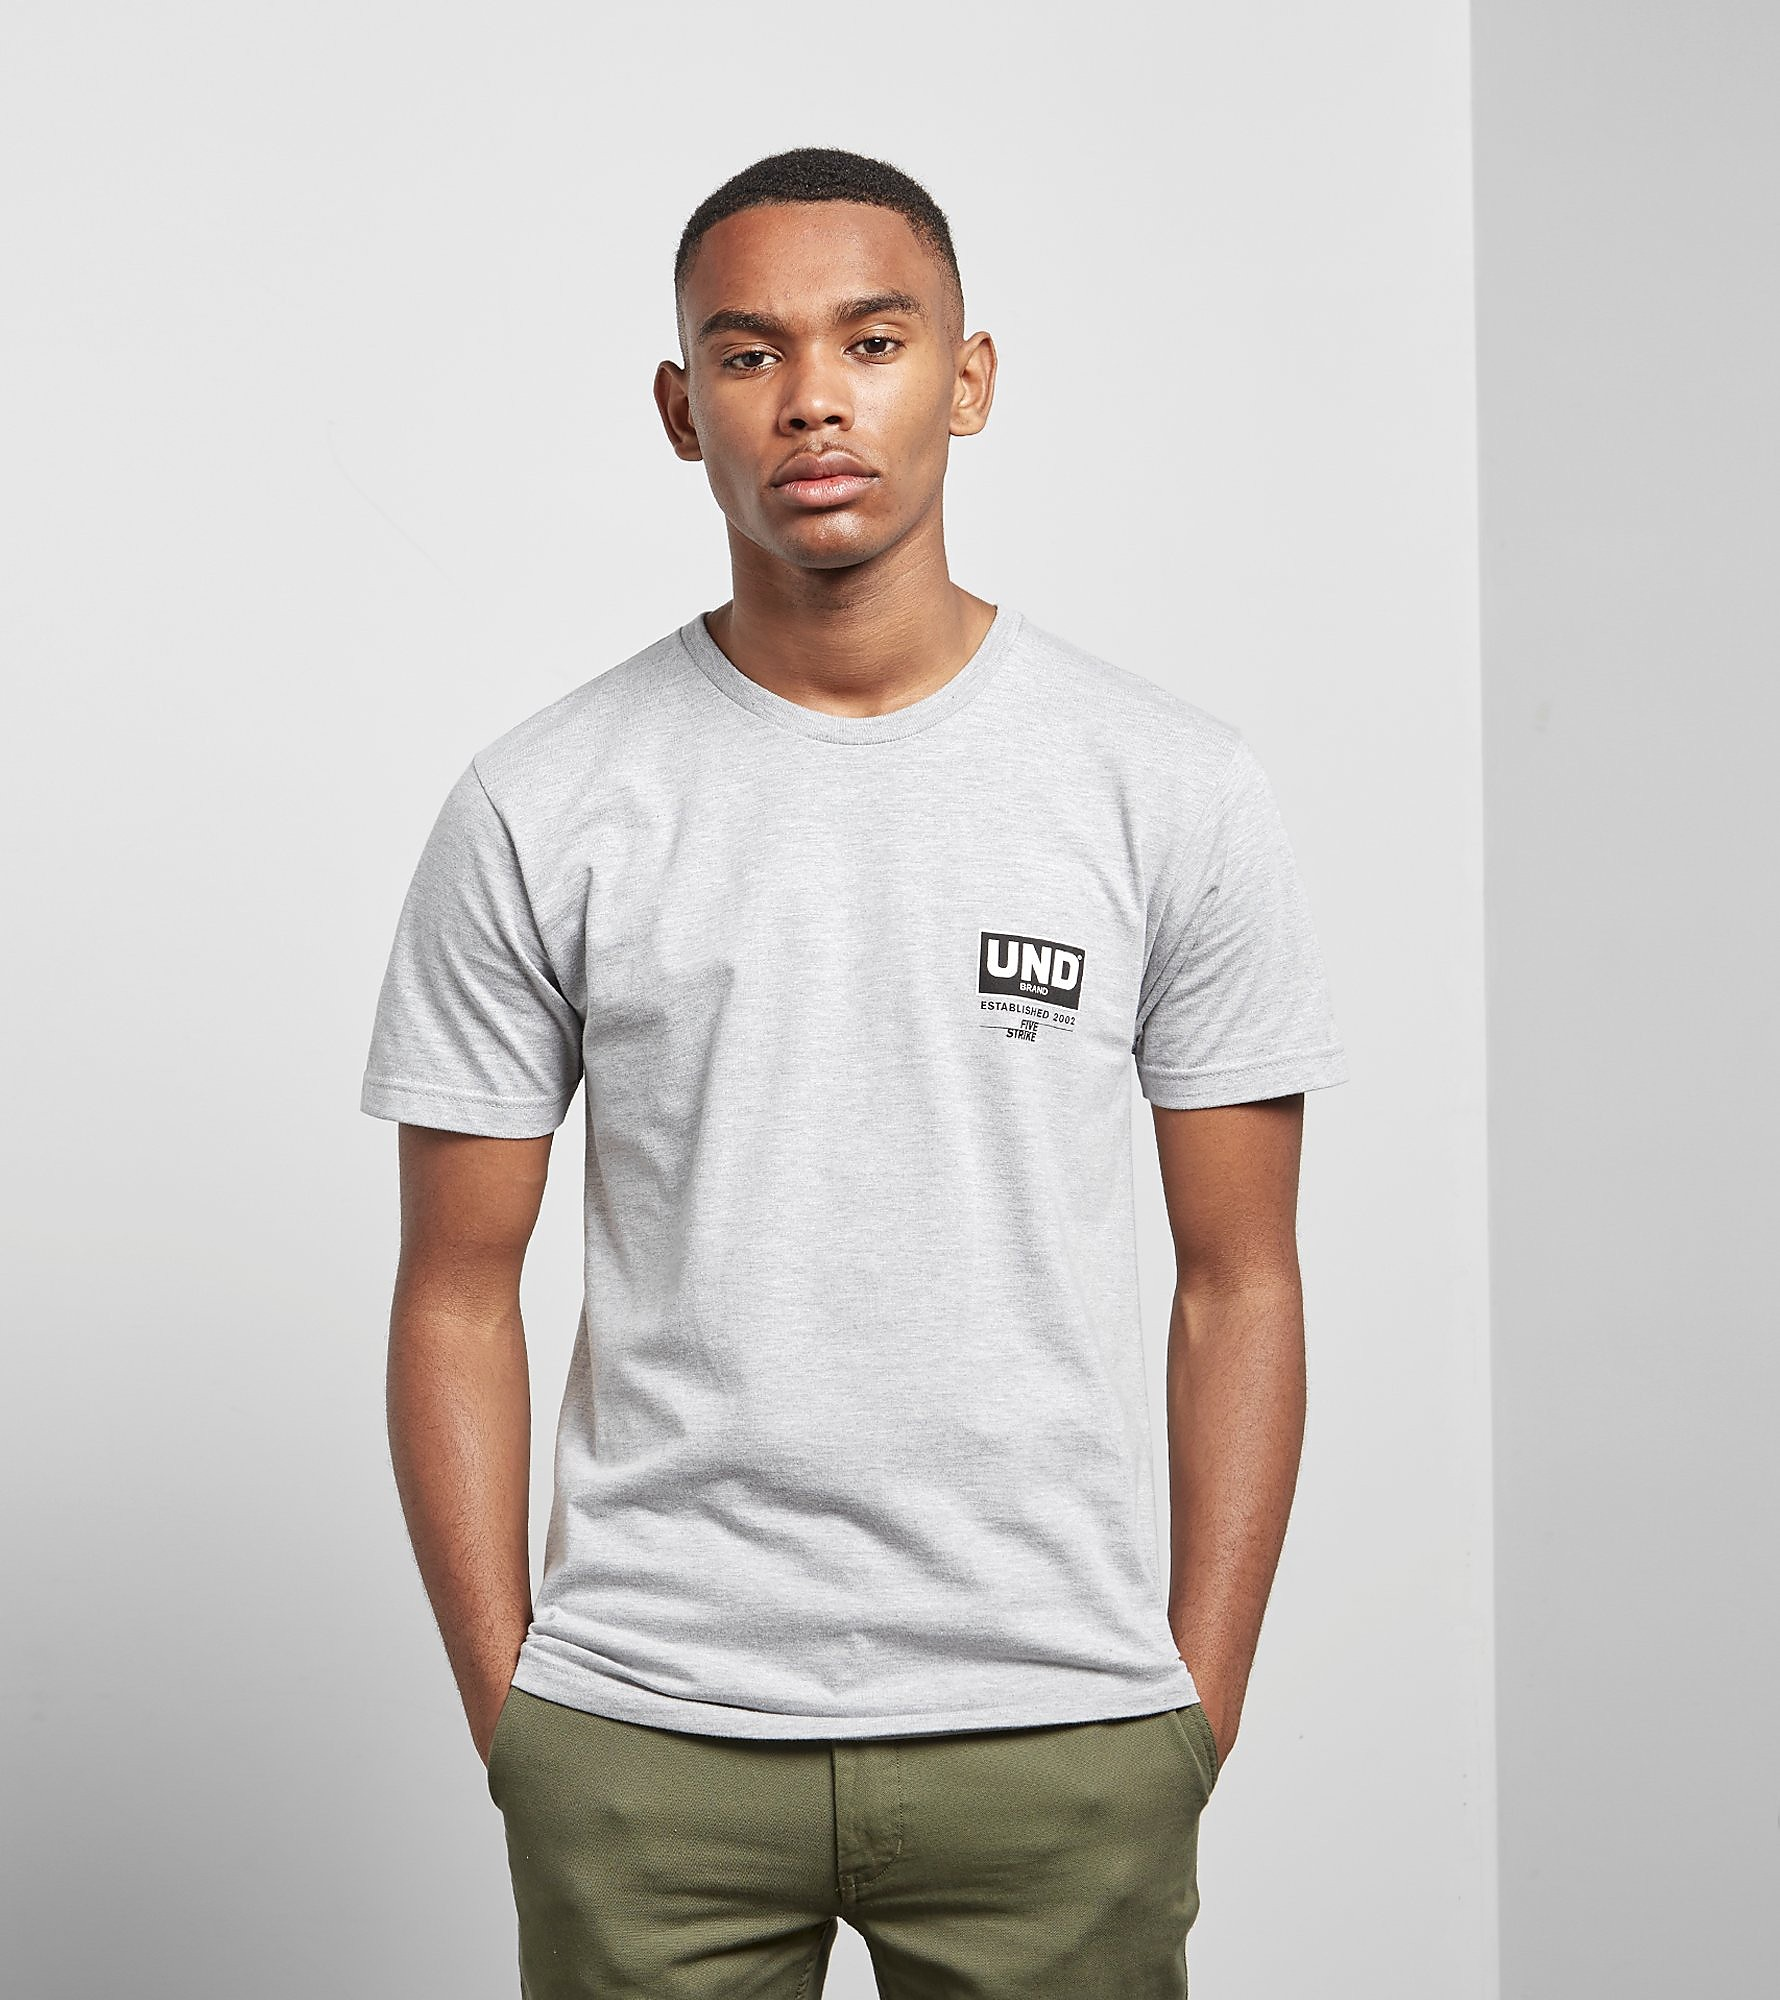 Undefeated Brand T-Shirt